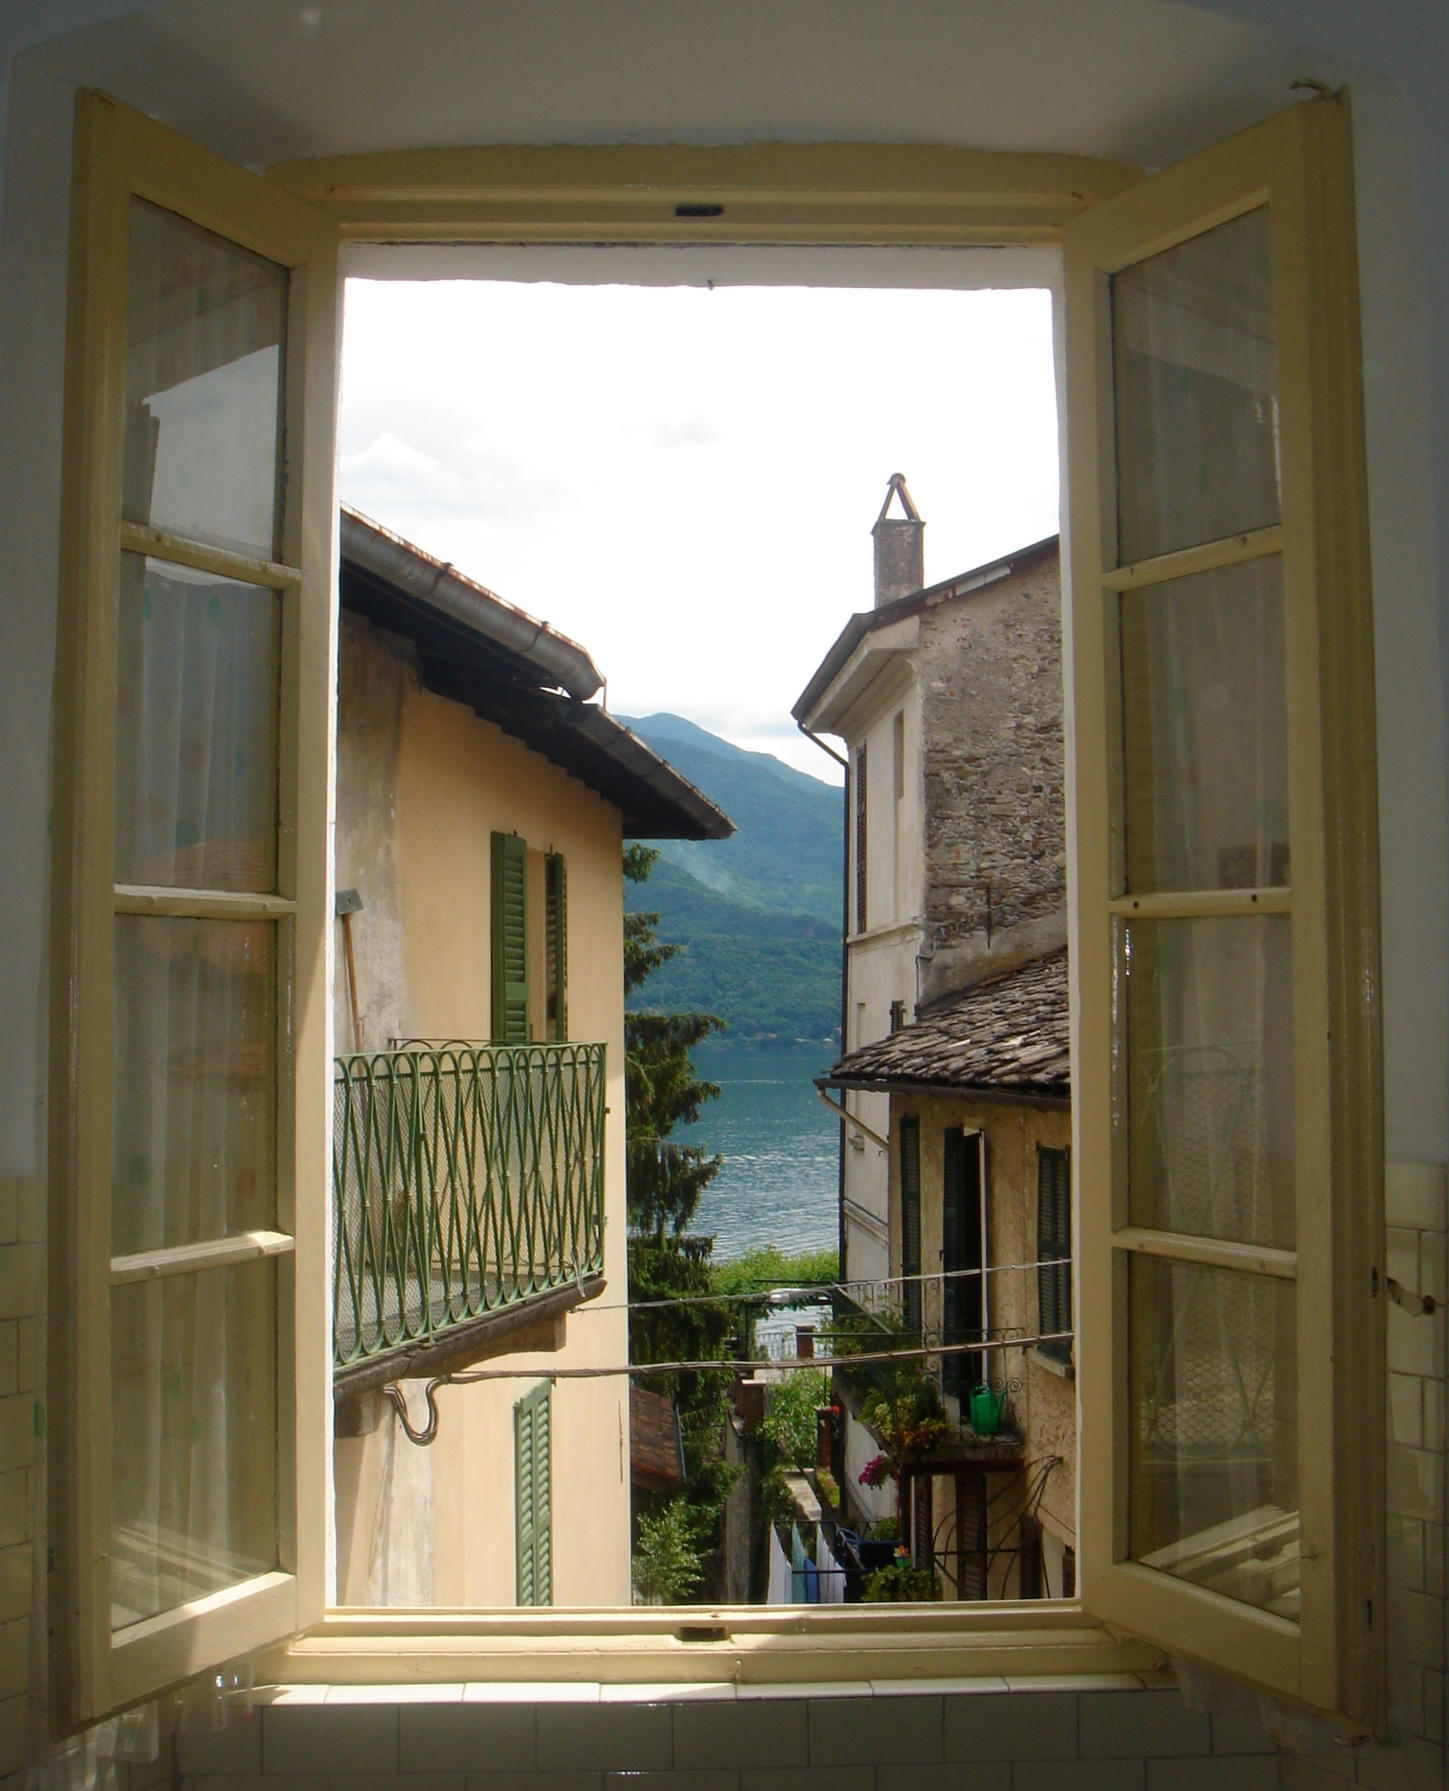 window with a view by clayjar on deviantart